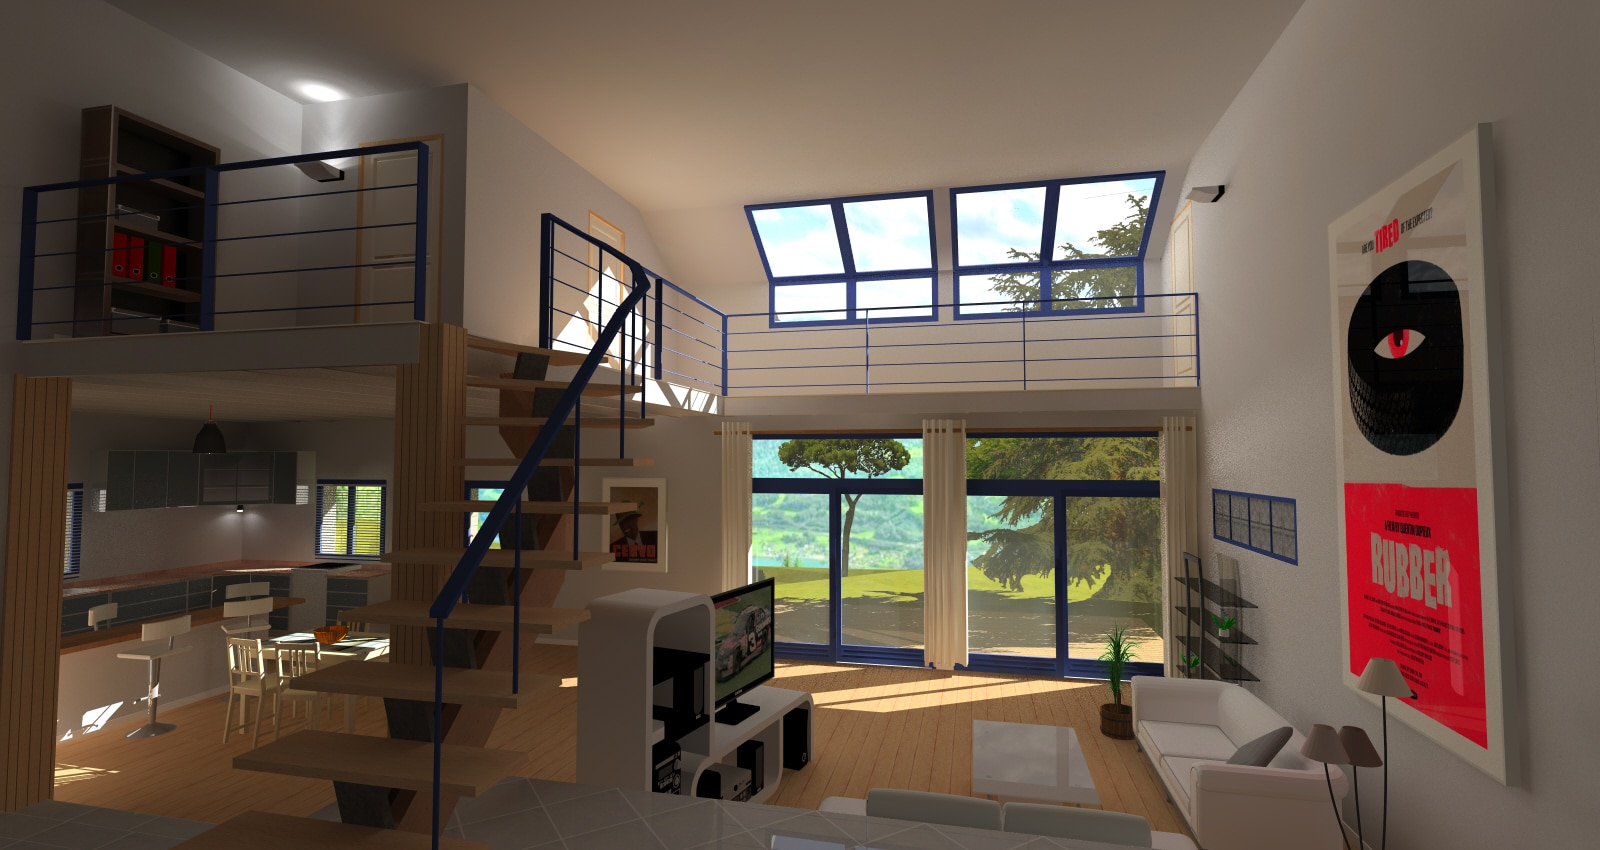 Am nagement int rieur galerie rendu 3d envisioneer for Amenagement interieur 3d